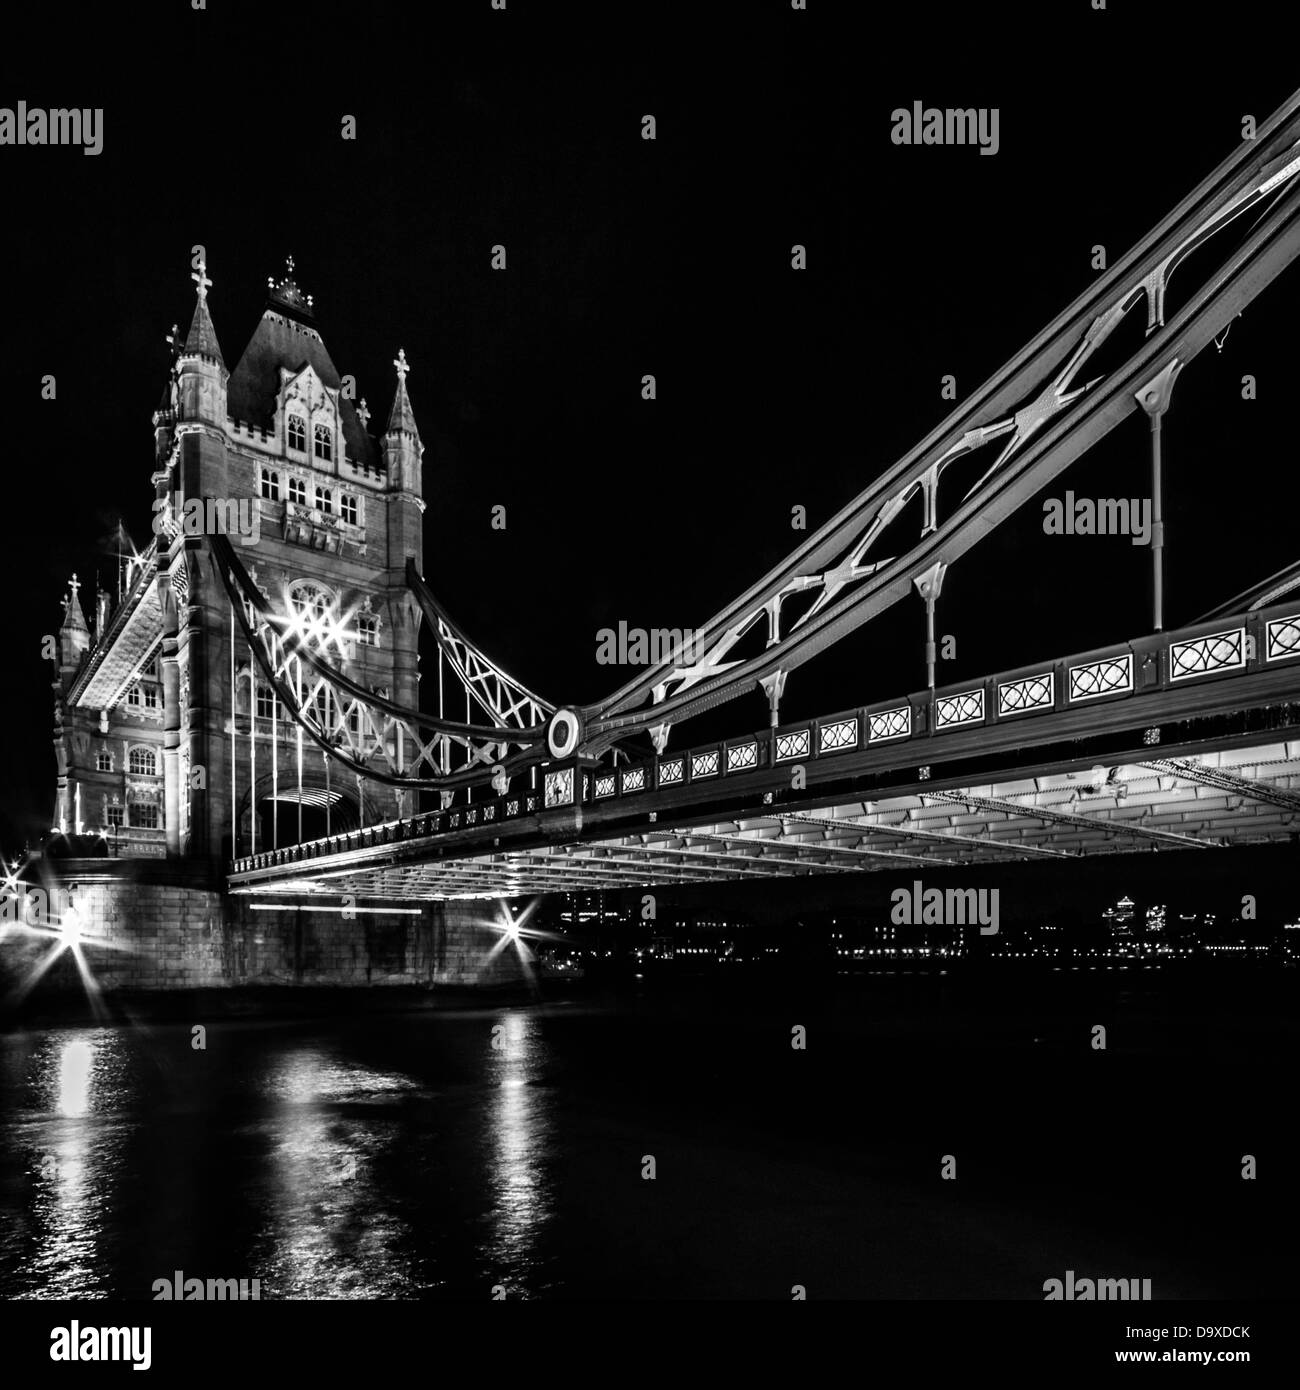 Tower Bridge (in black and white) by night, London, UK - Stock Image